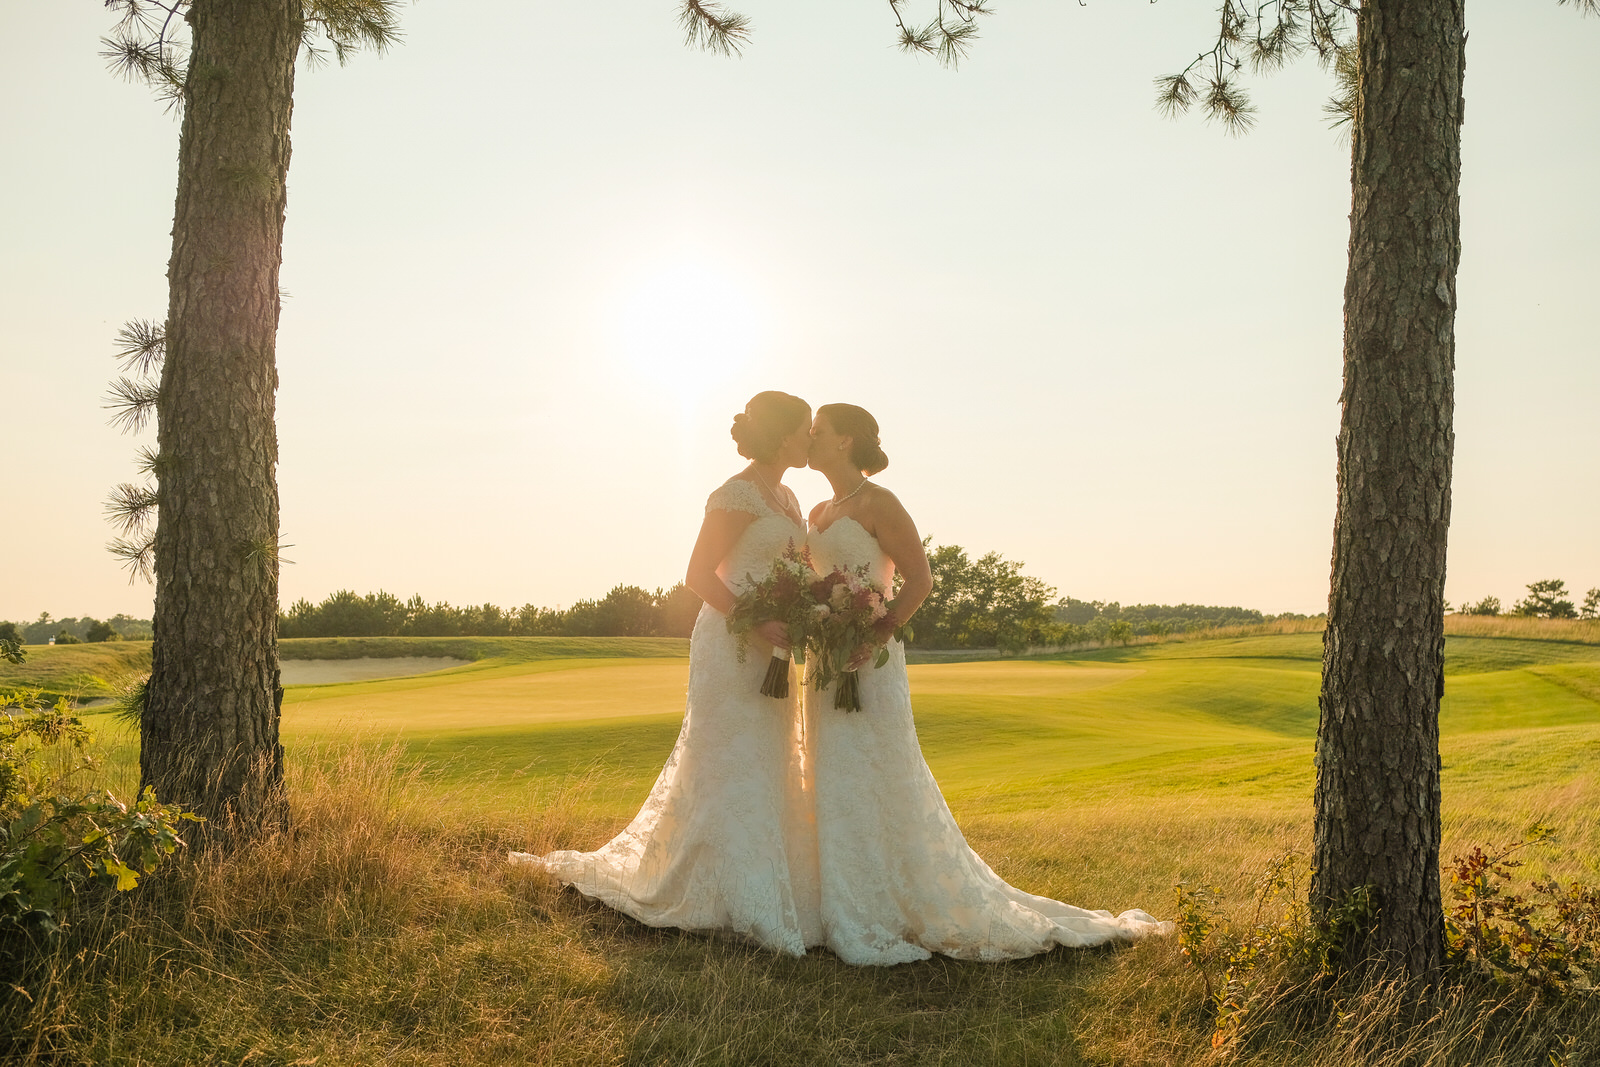 waverly-oaks-golf-club-wedding-photography-61.jpg